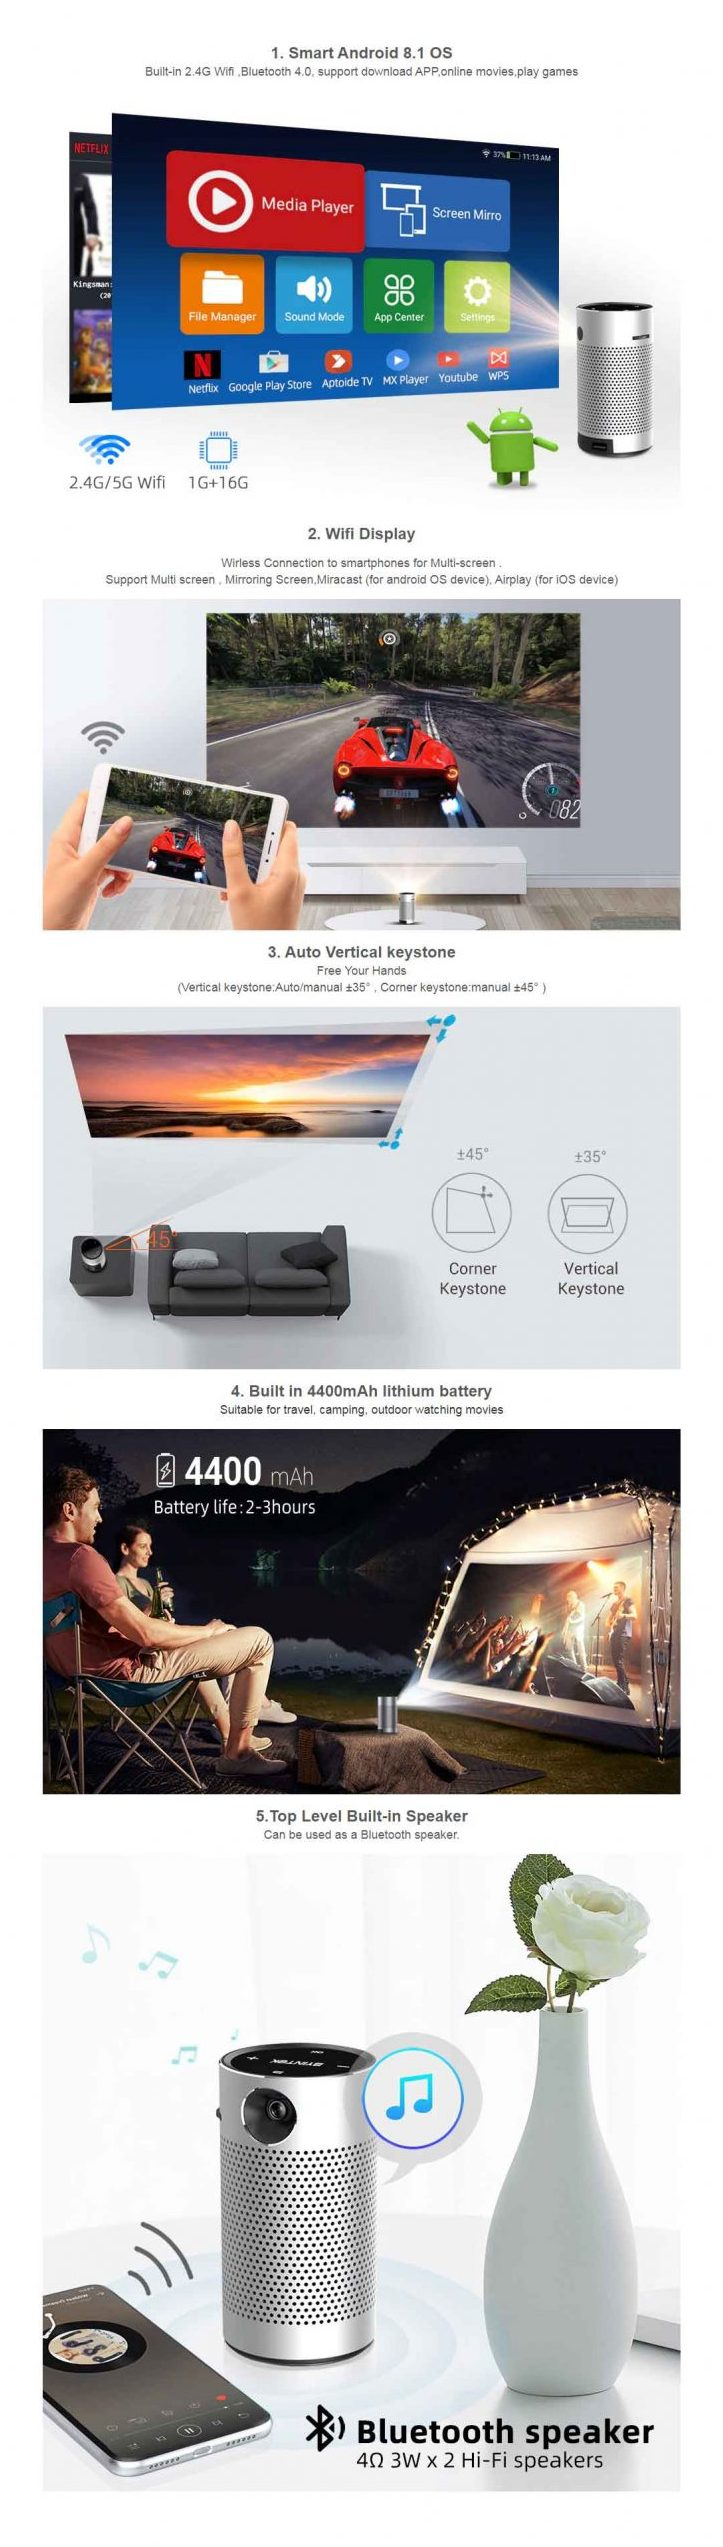 Byintek UFO P7 Android Projector - Portable Smart Home Theater Pocket Battery Projector